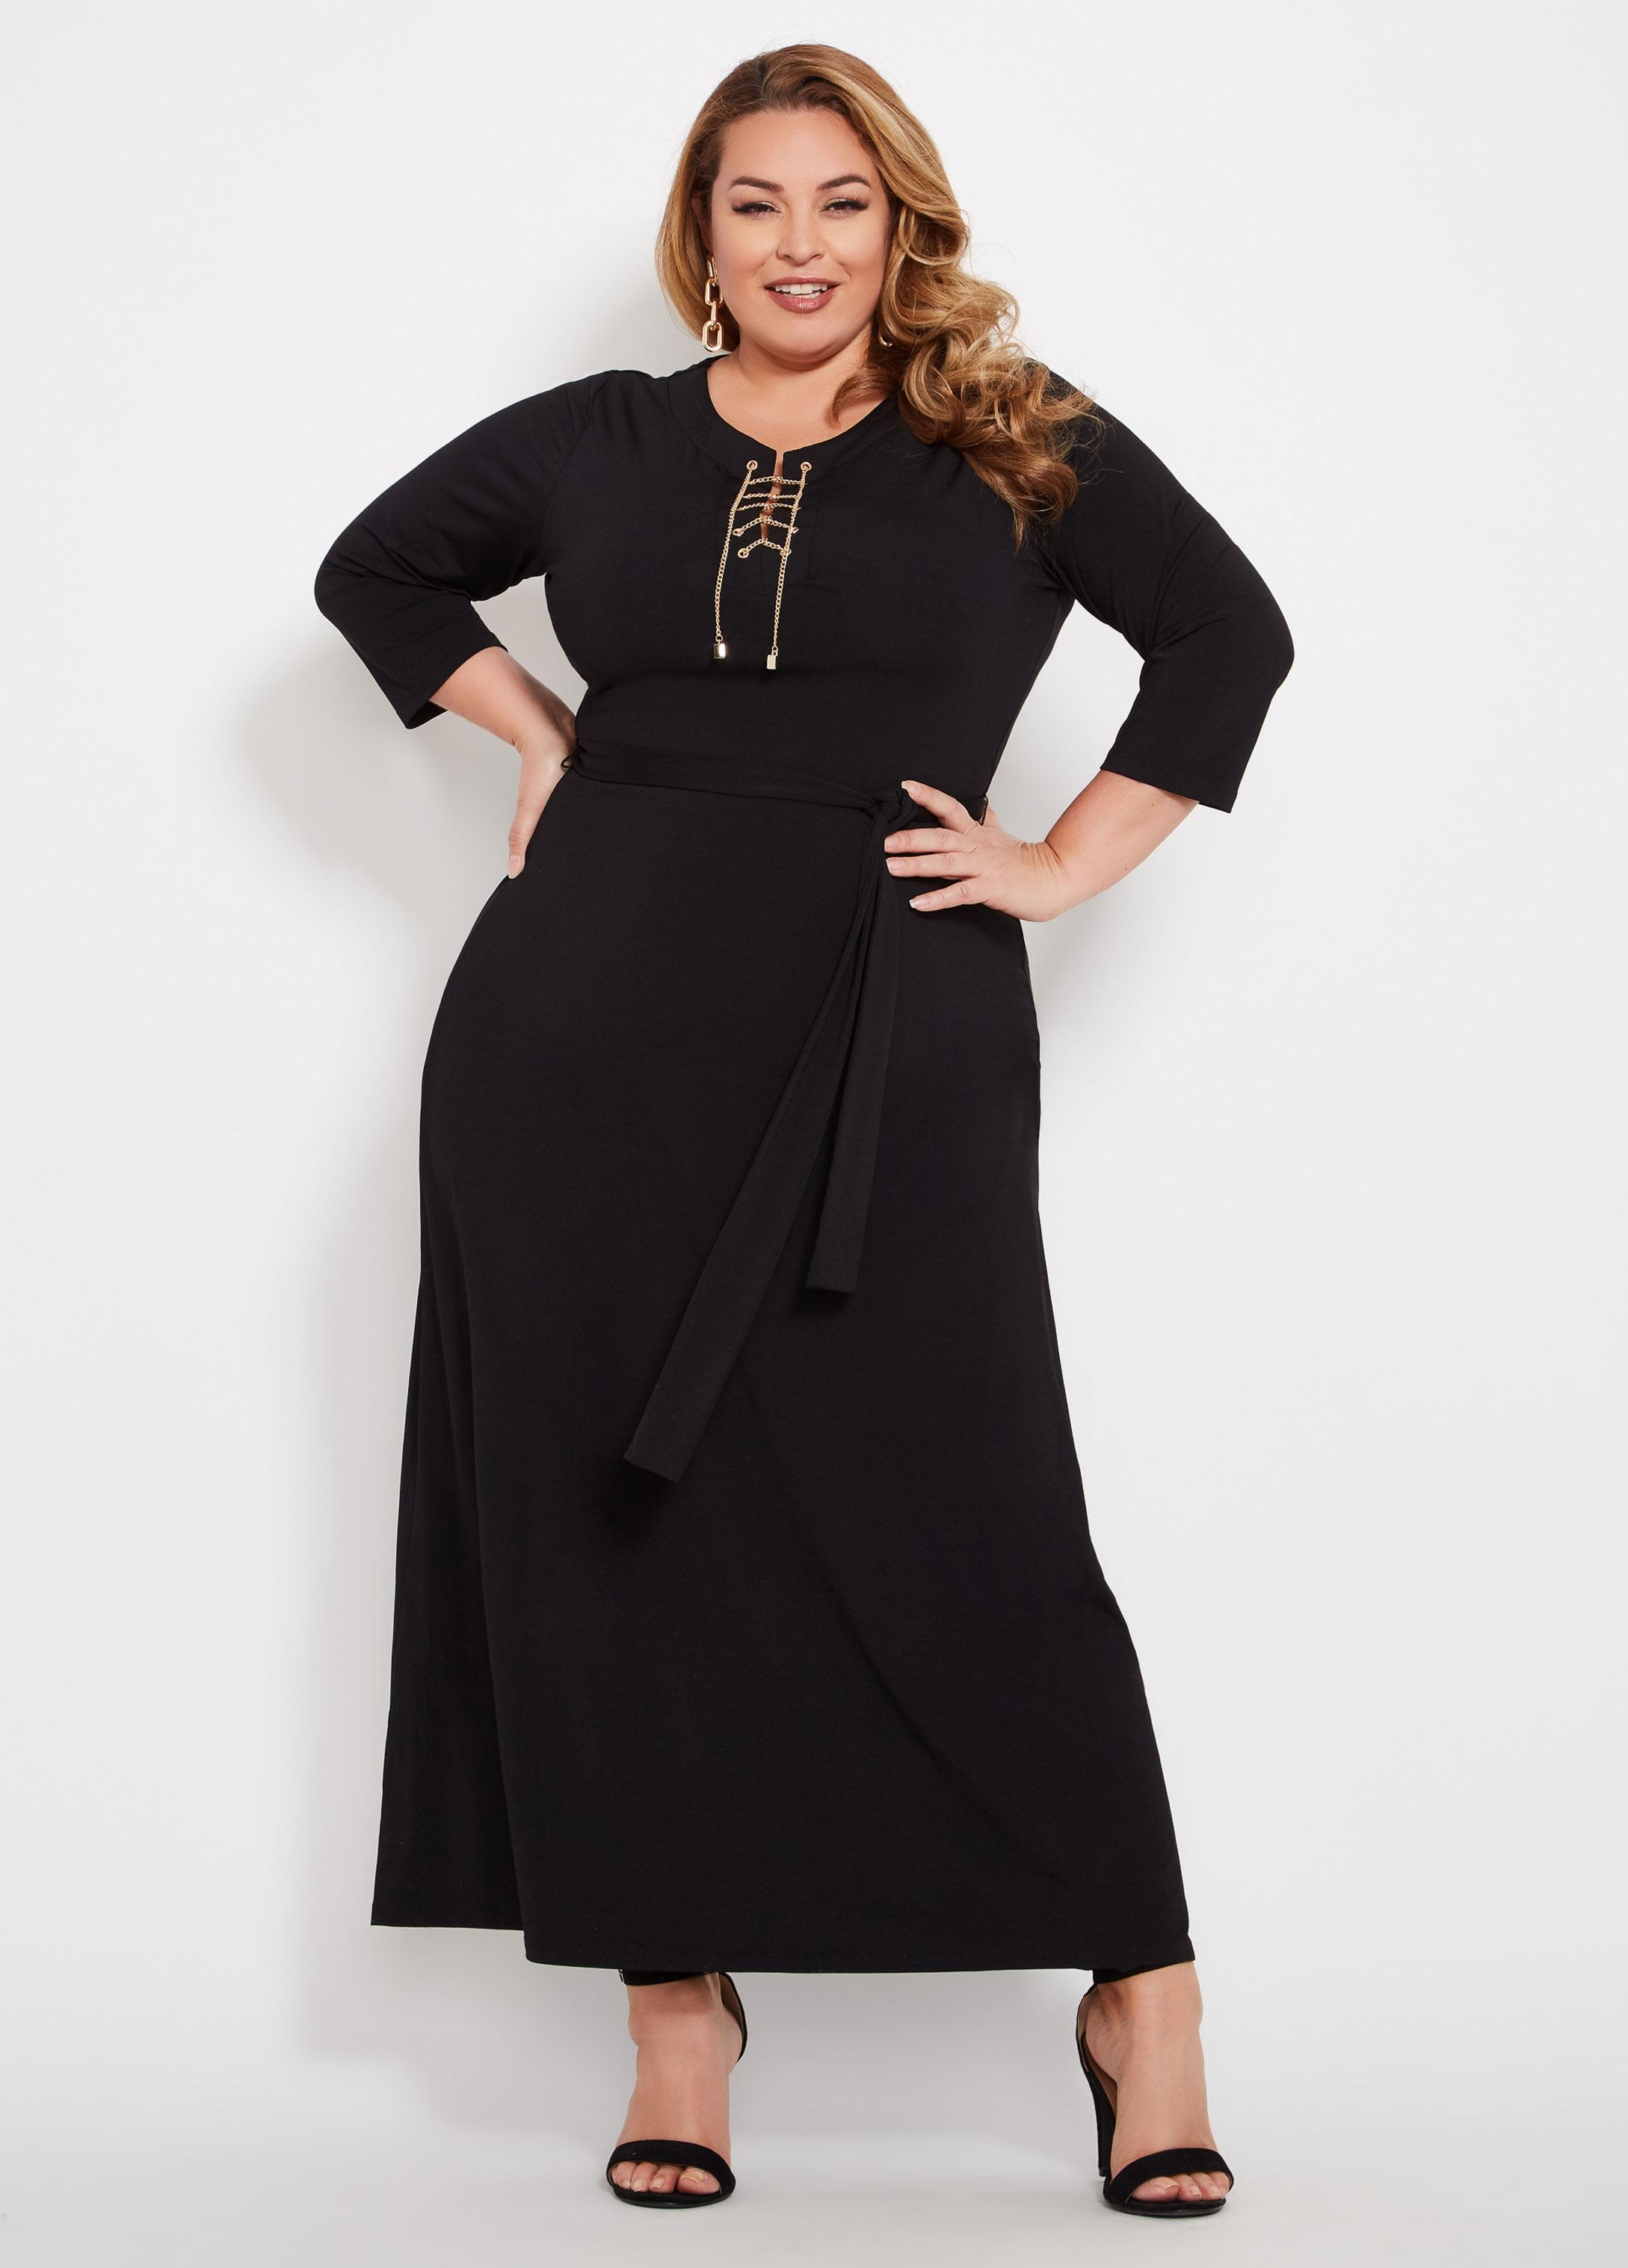 Lyst - Ashley Stewart Plus Size Chain Lace Up Maxi Dress in Black